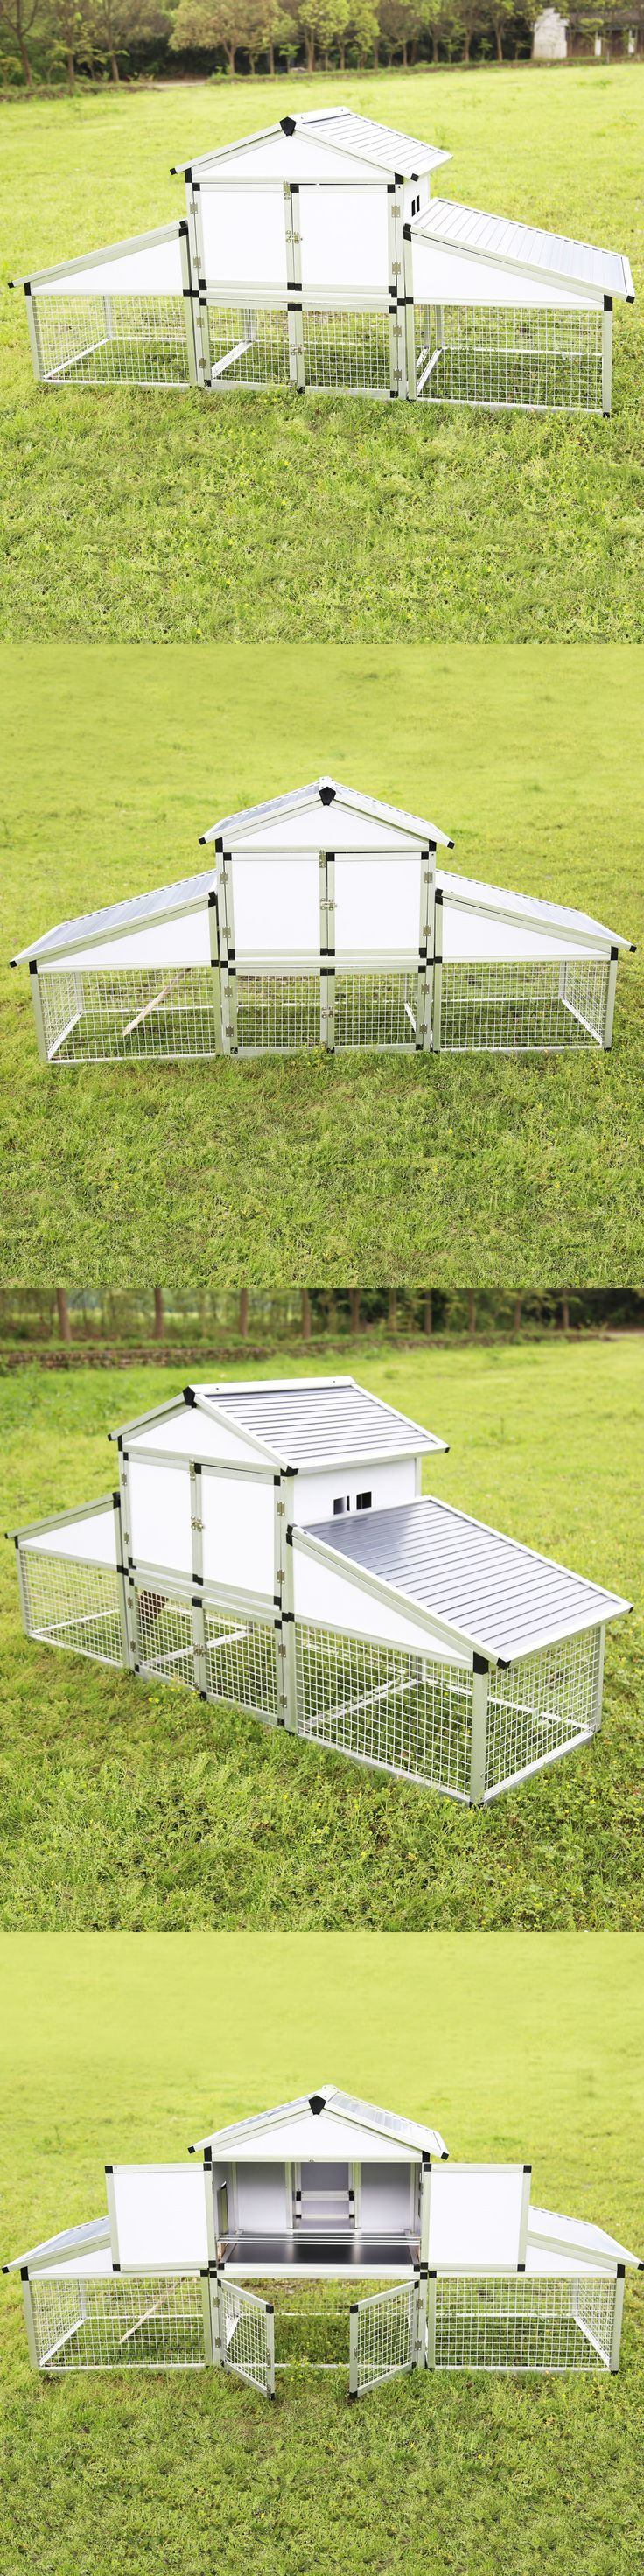 Backyard Poultry Supplies 177801: New 96 Deluxe Aluminum Chicken Coop Poultry Hen House Hutch Run Backyard -> BUY IT NOW ONLY: $285.99 on eBay!